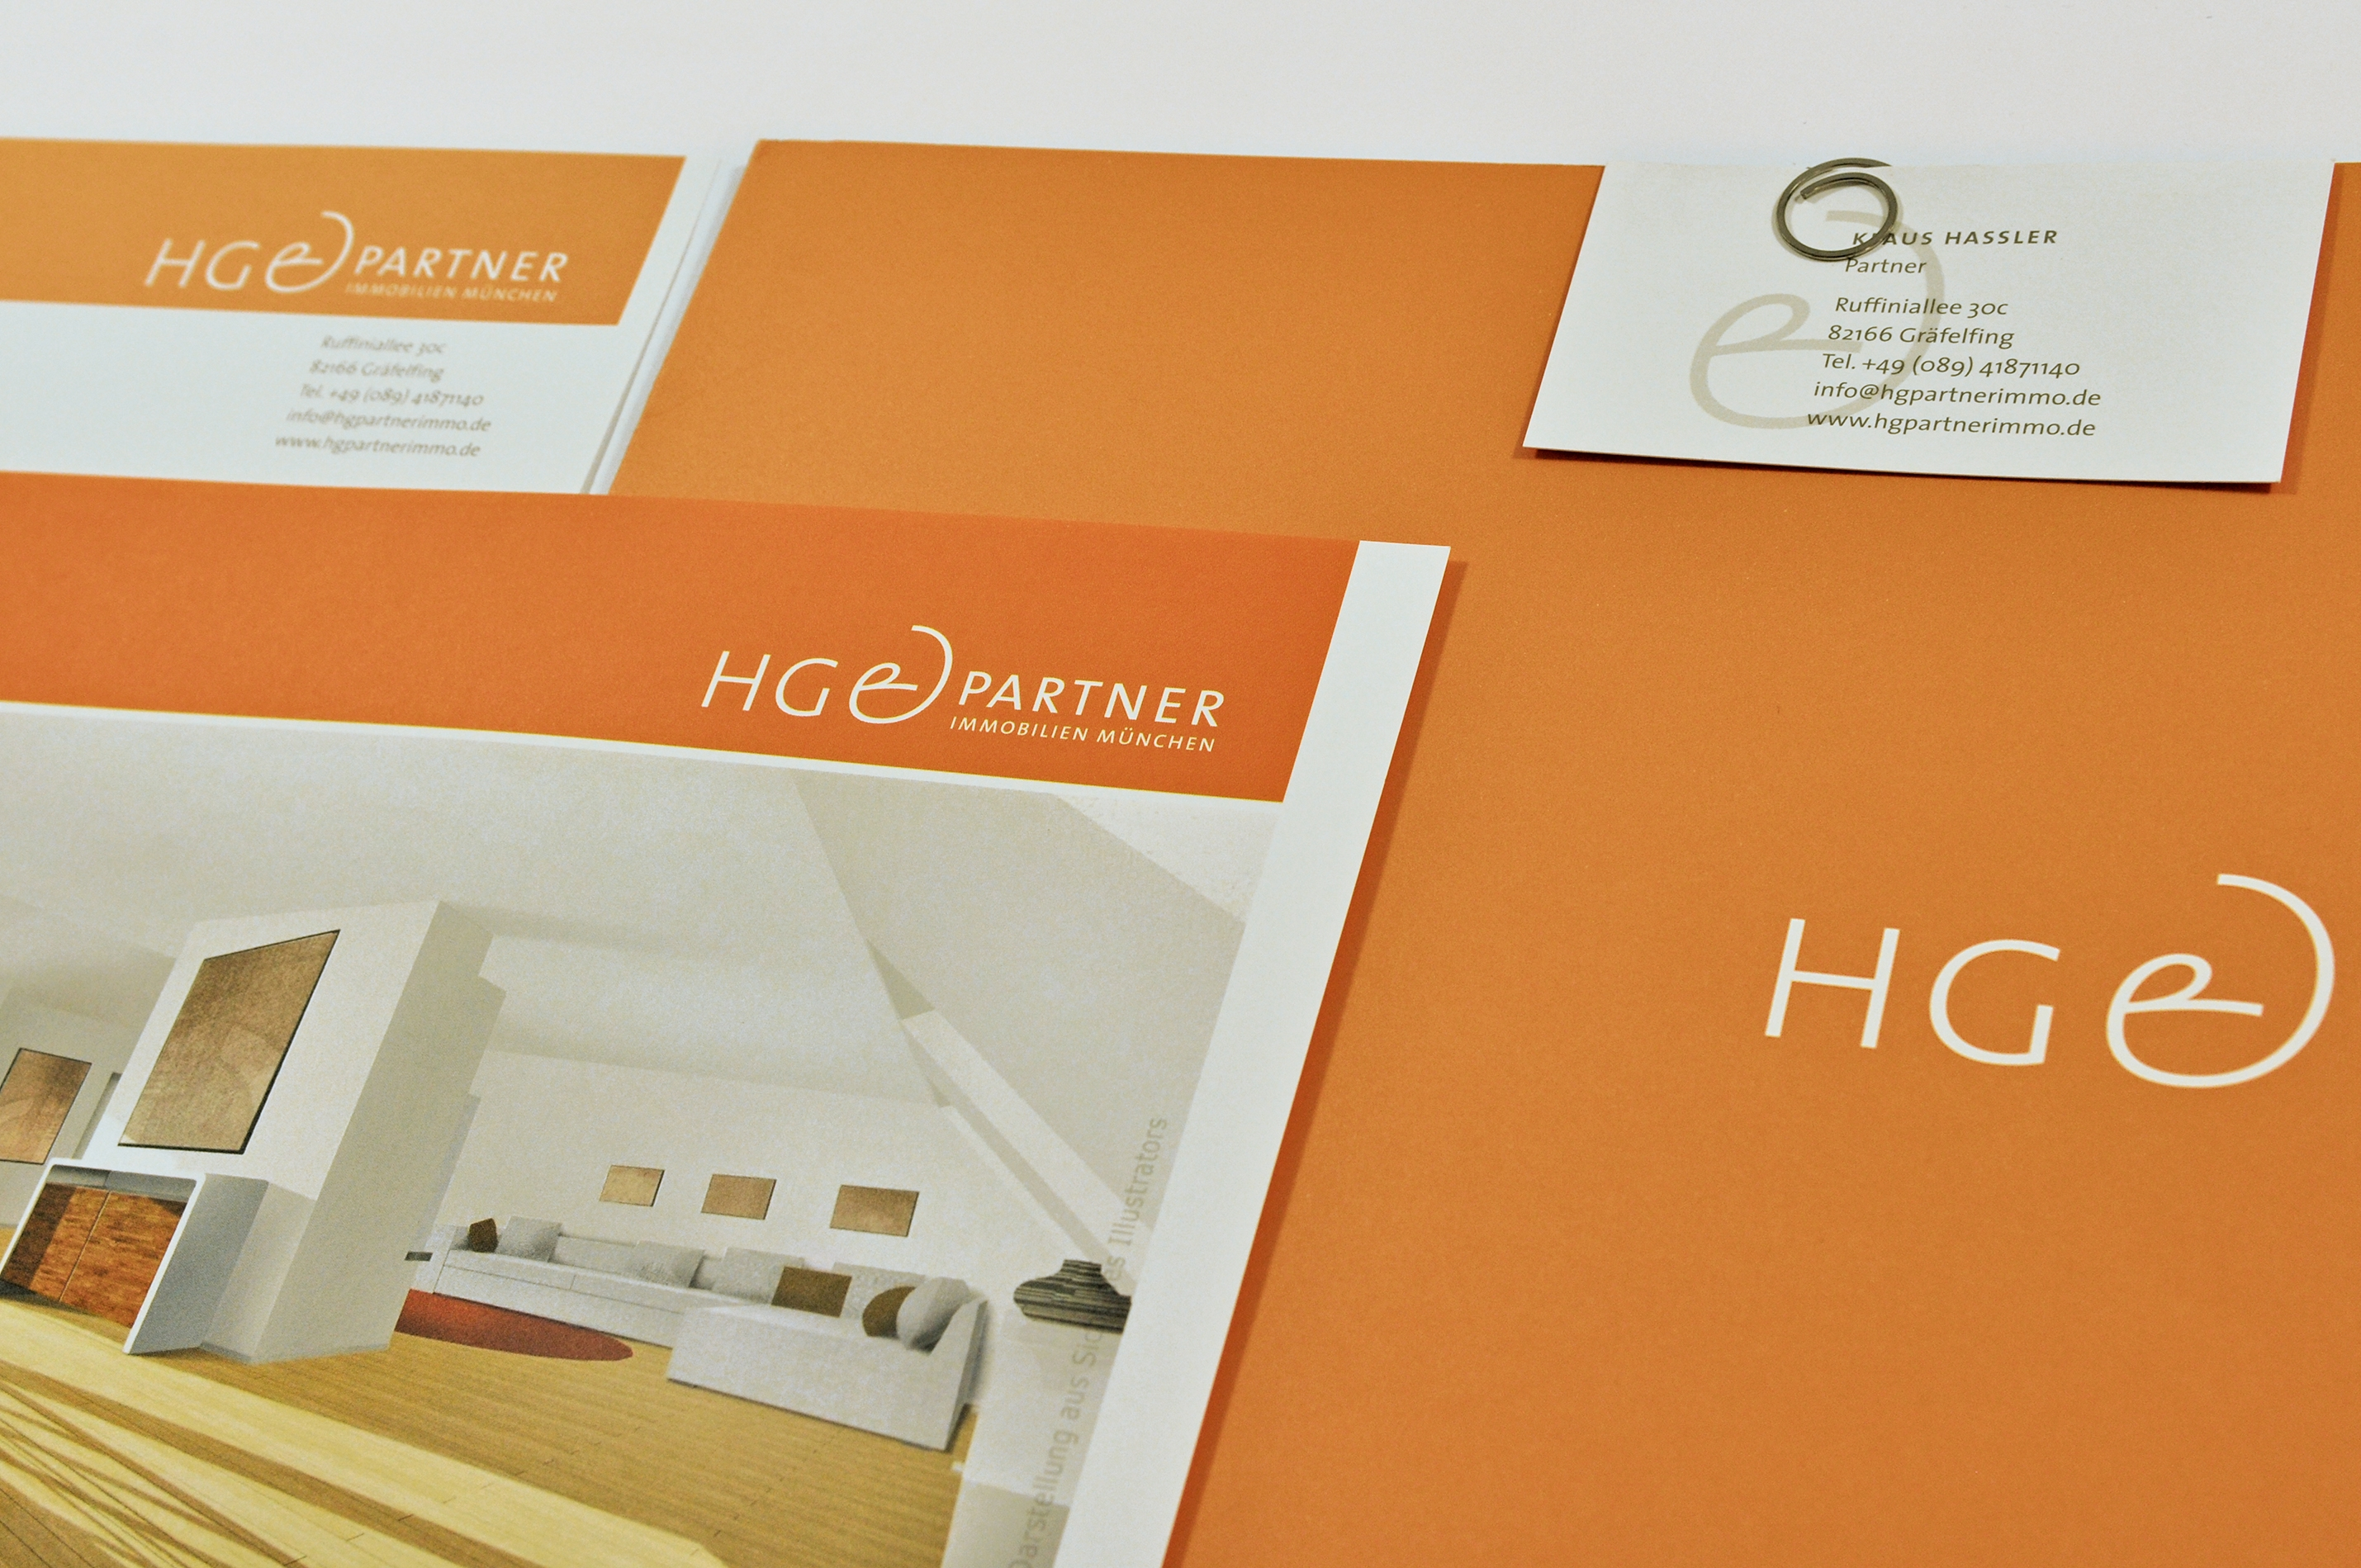 HG & Partner Immobilien München, Corporate Design